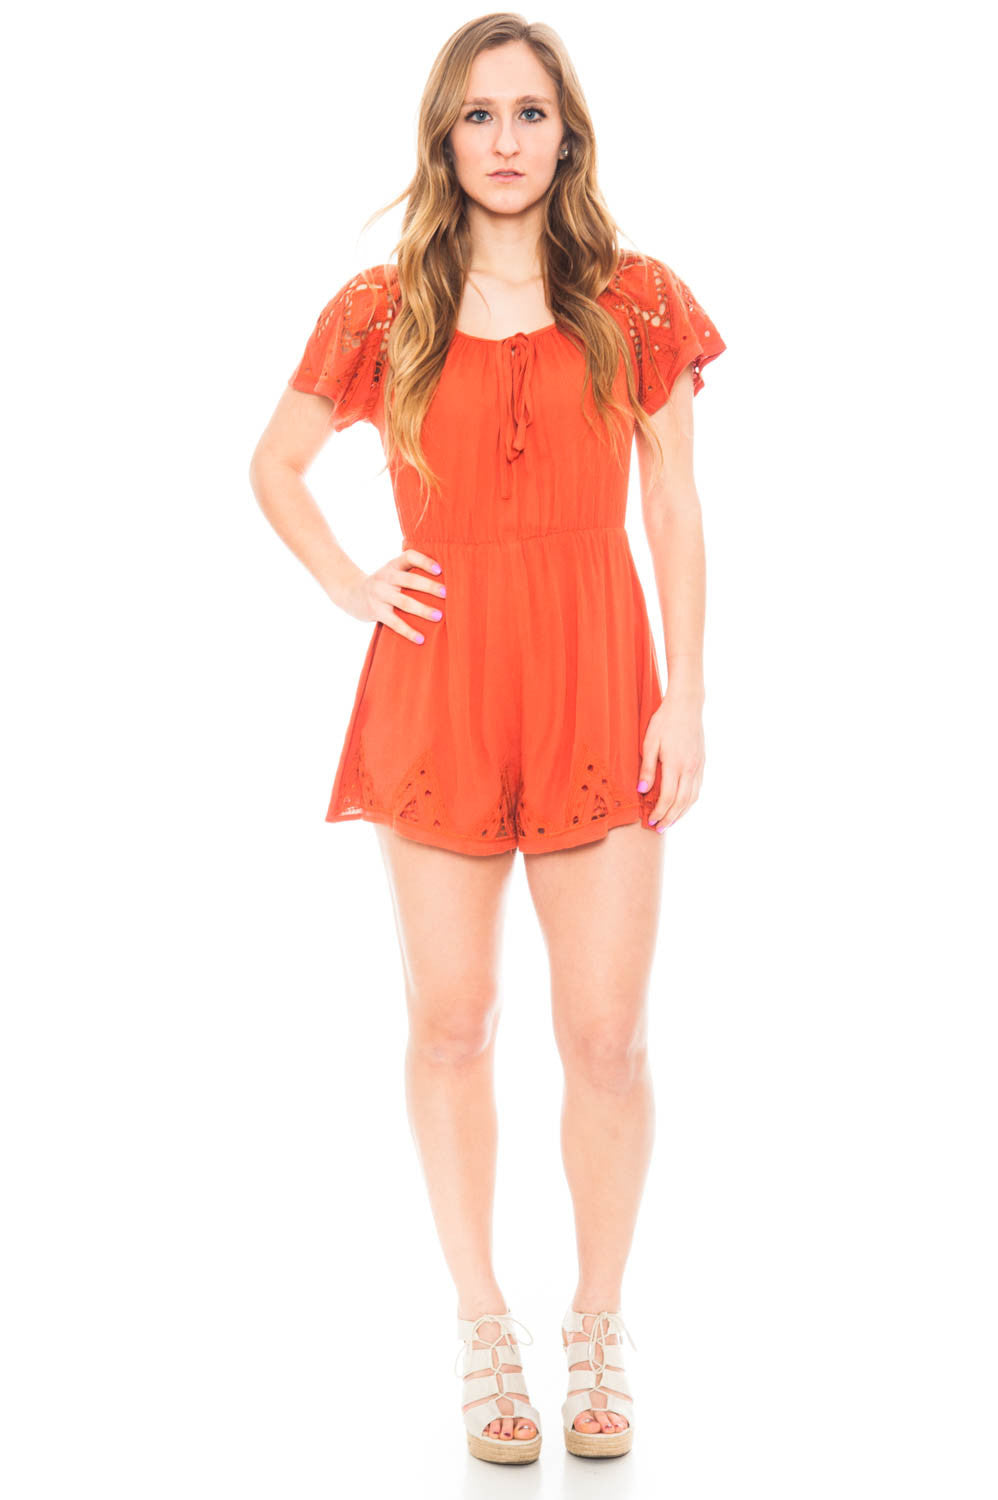 Romper - Embroidery Detail Romper with a Cinched Waist by Lush